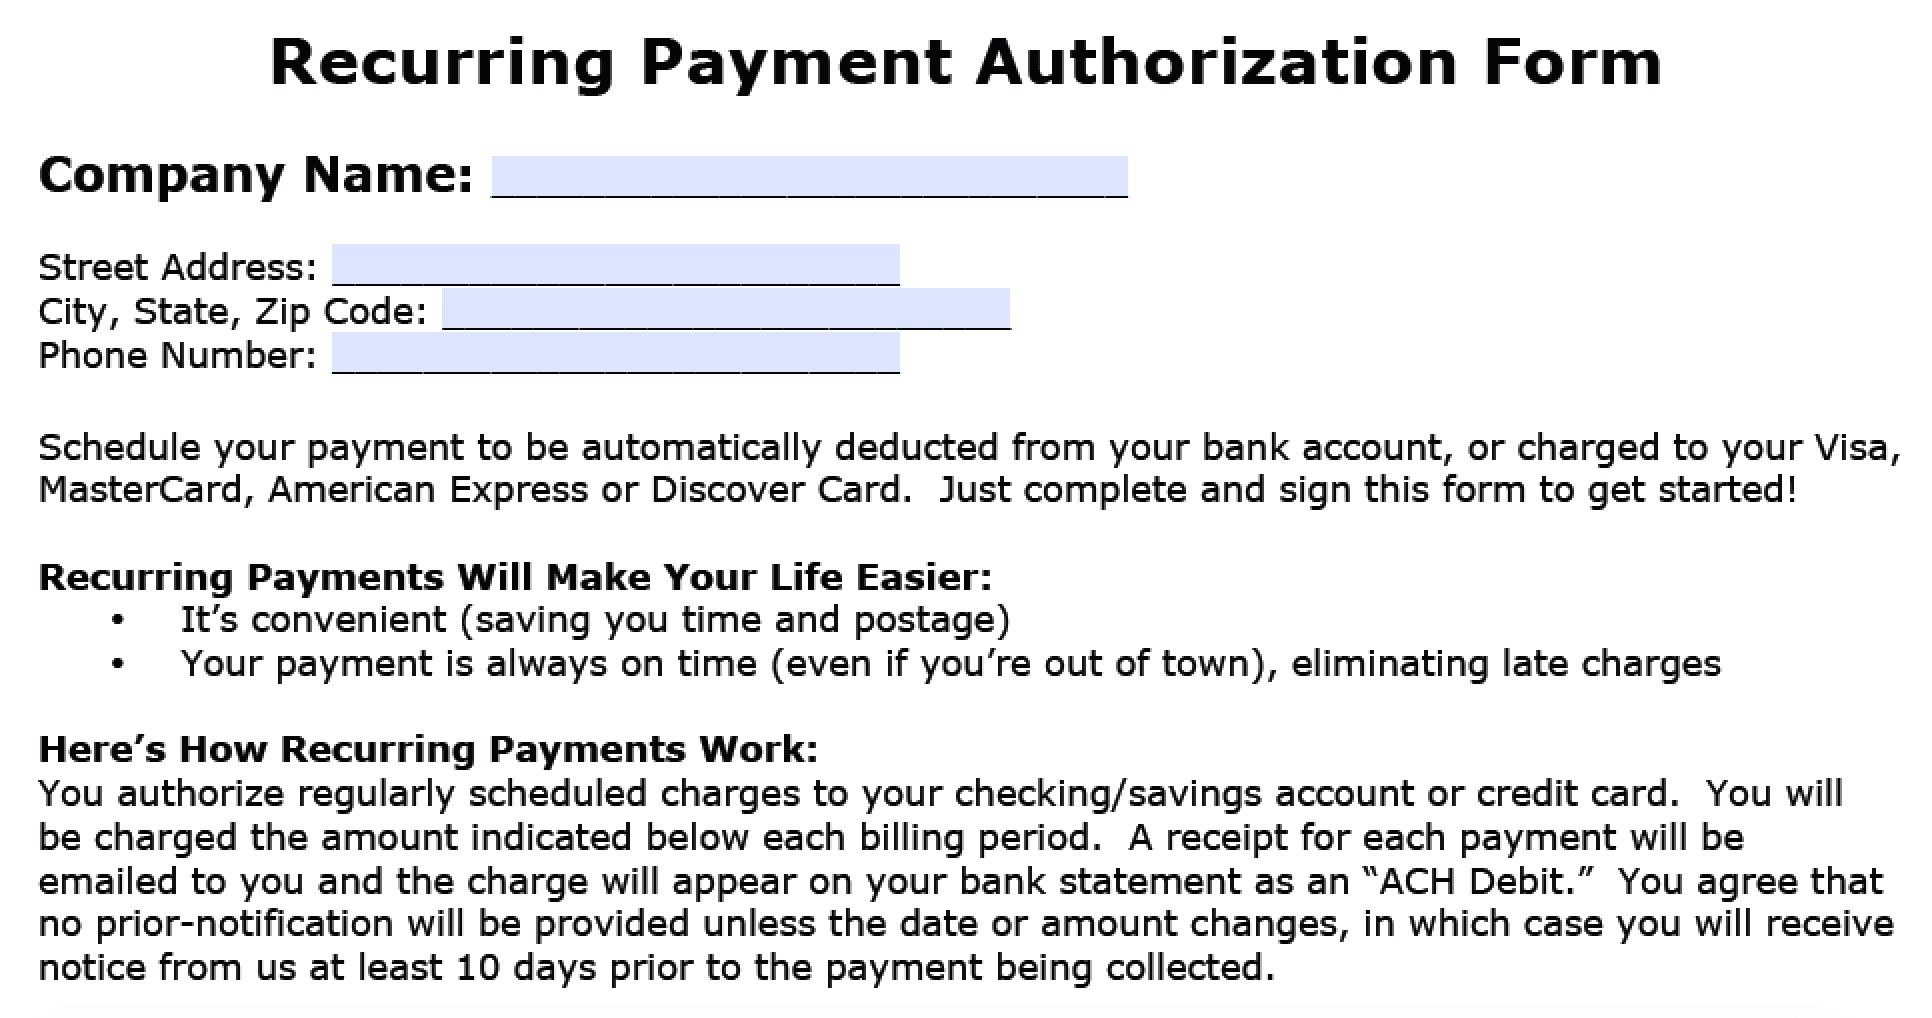 Download Recurring Payment Authorization Form Template Throughout Credit Card Billing Authorization Form Template In 2020 Good Credit Credit Card Payment Credit Card